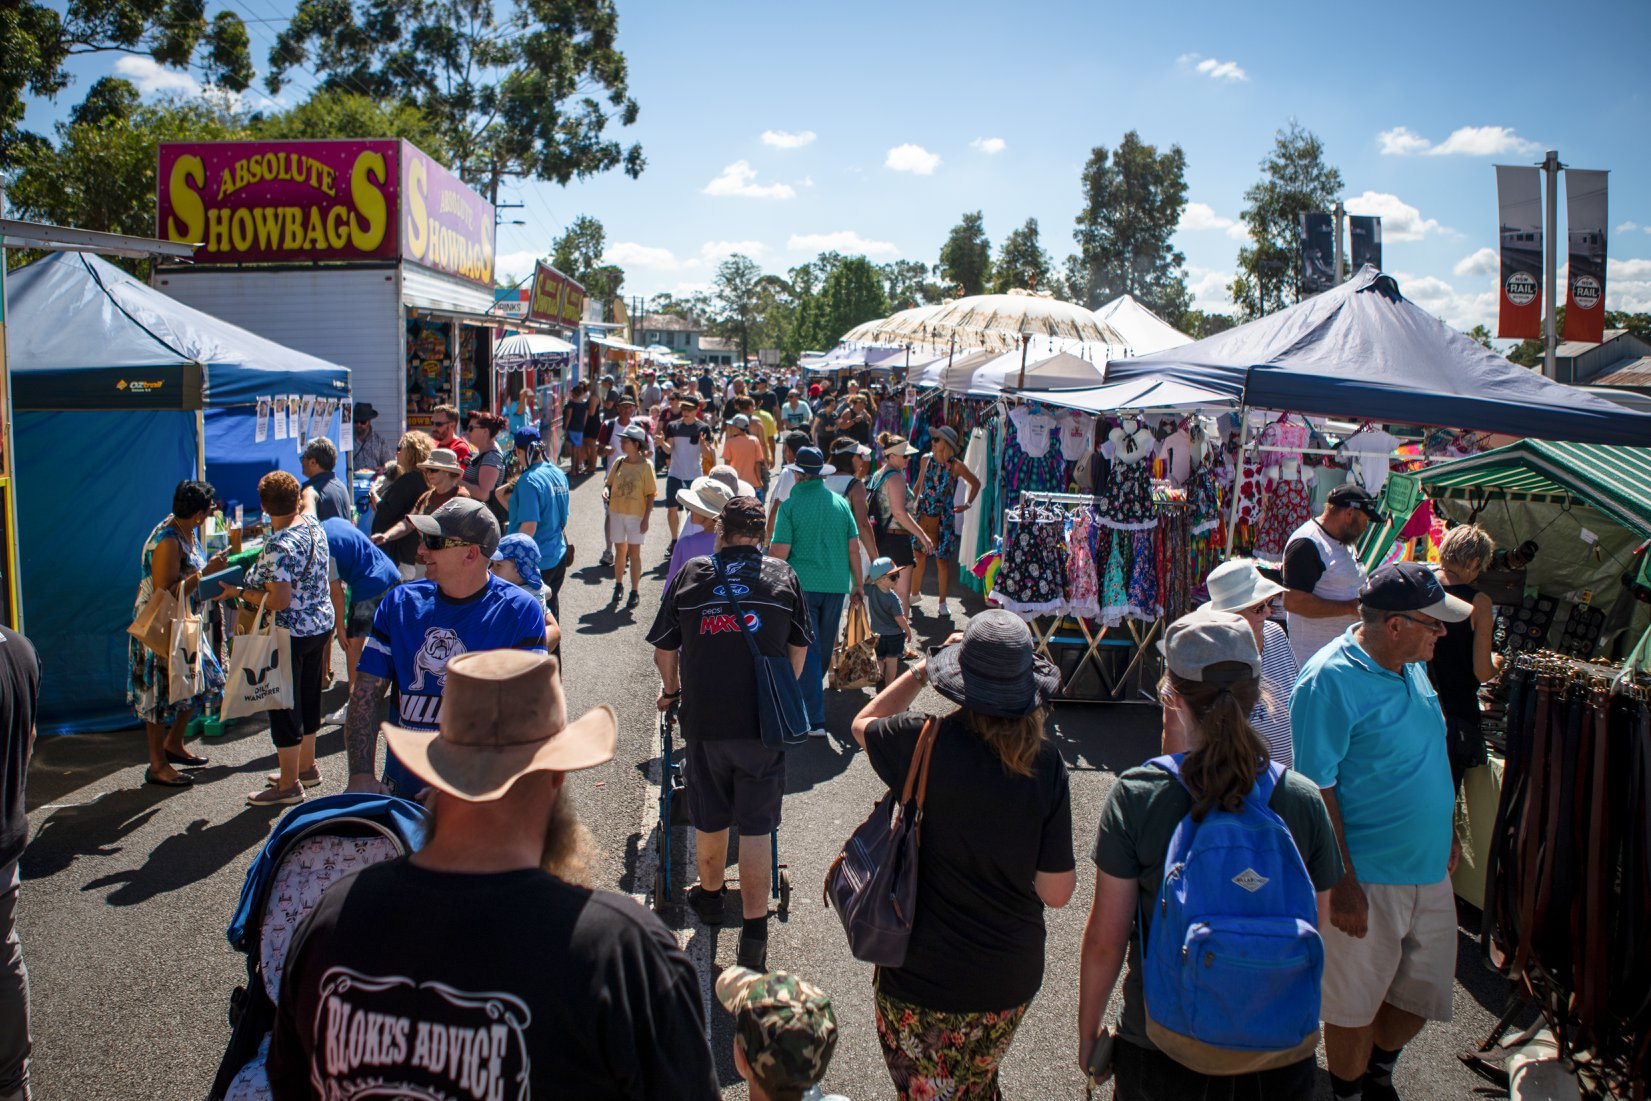 More than 180 market stalls throughout the streets of Thirlmere during the festival. -Trys Eddy Photos